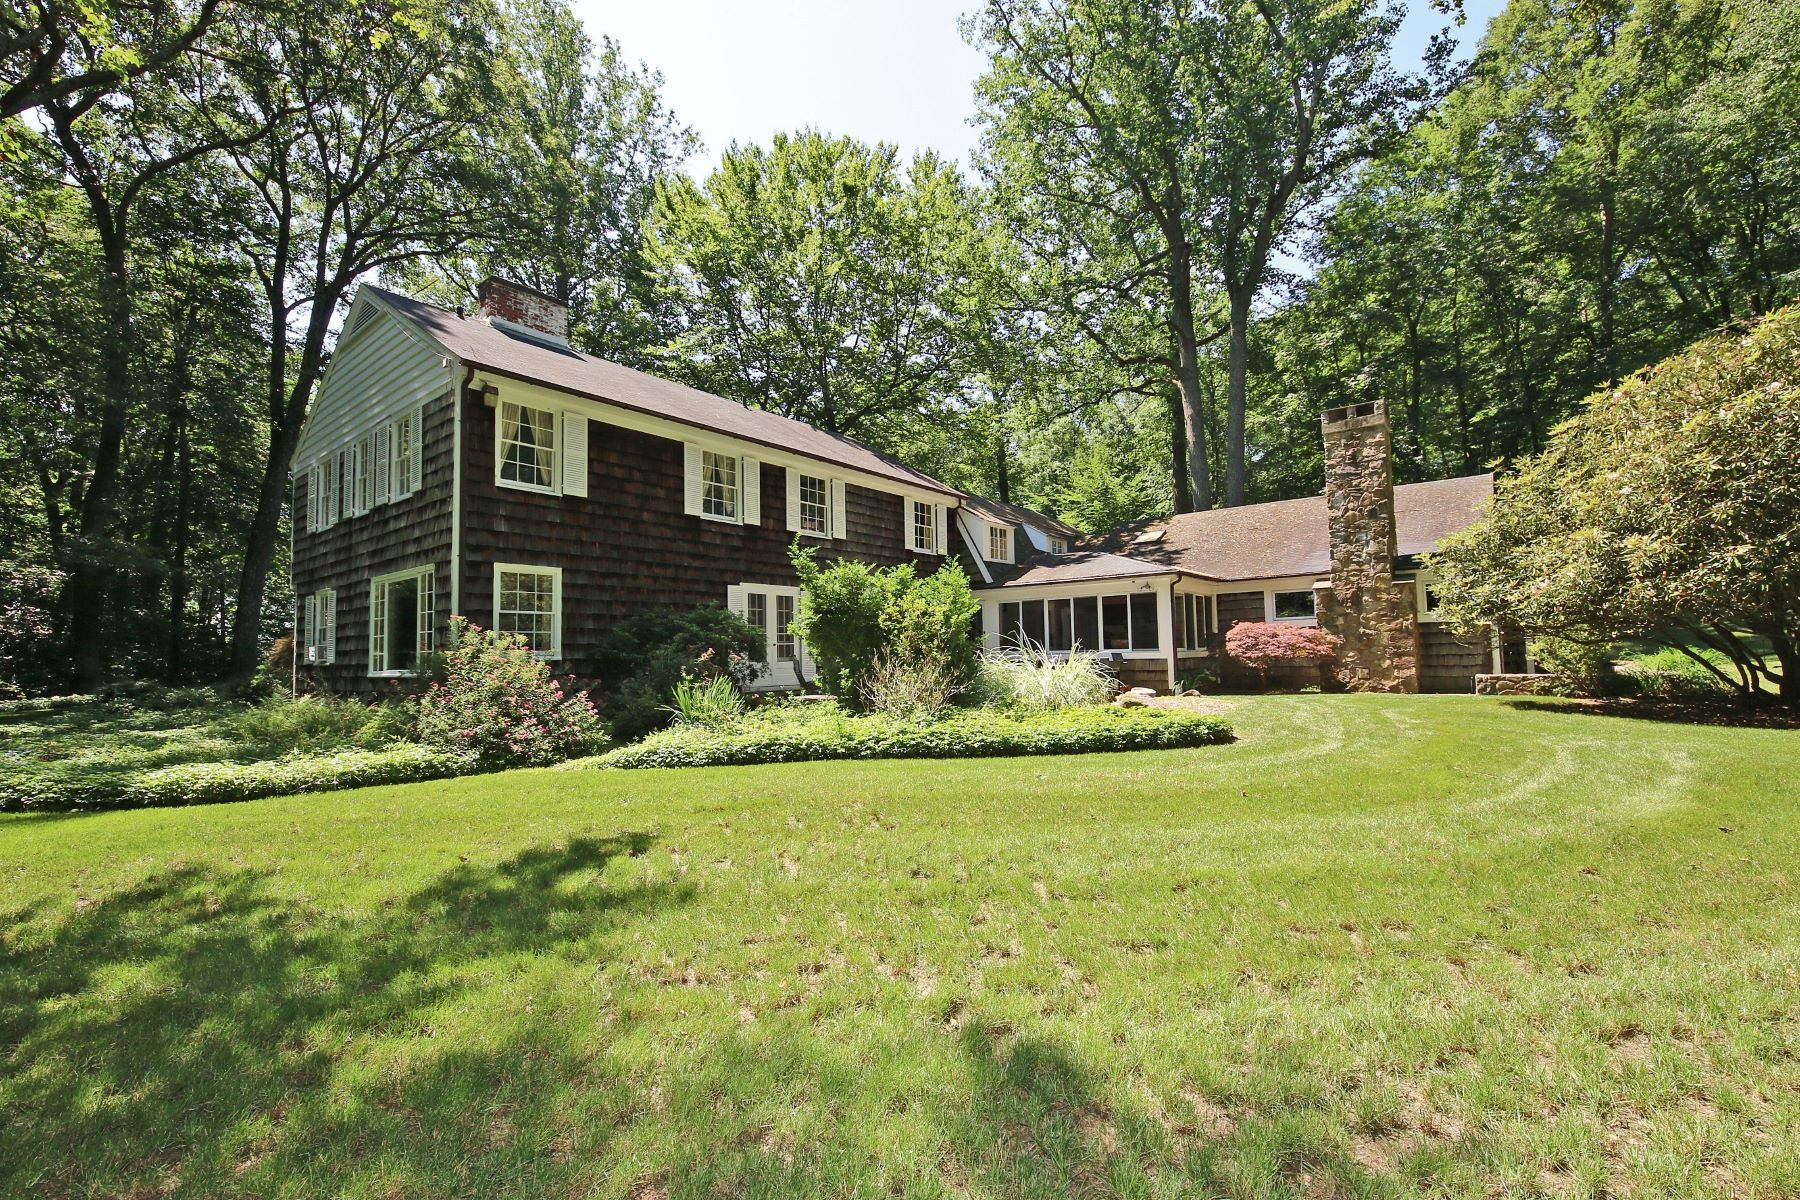 Single Family Home for Sale at LOWER EASTON RETREAT 25 Lantern Hill Road Easton, Connecticut 06612 United States